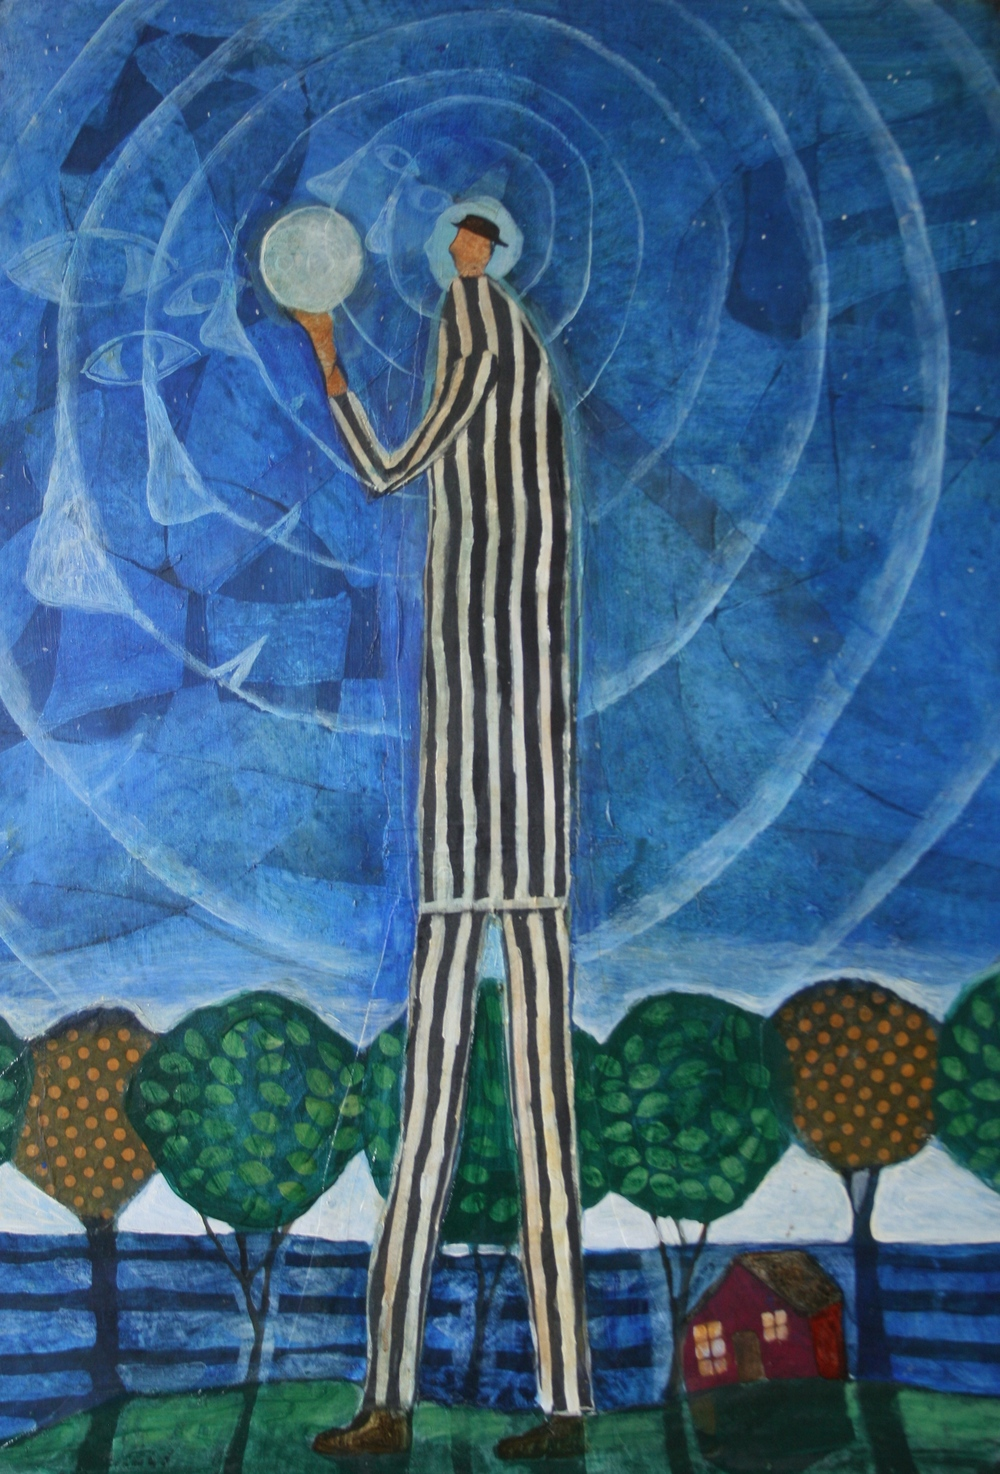 Man and Moon